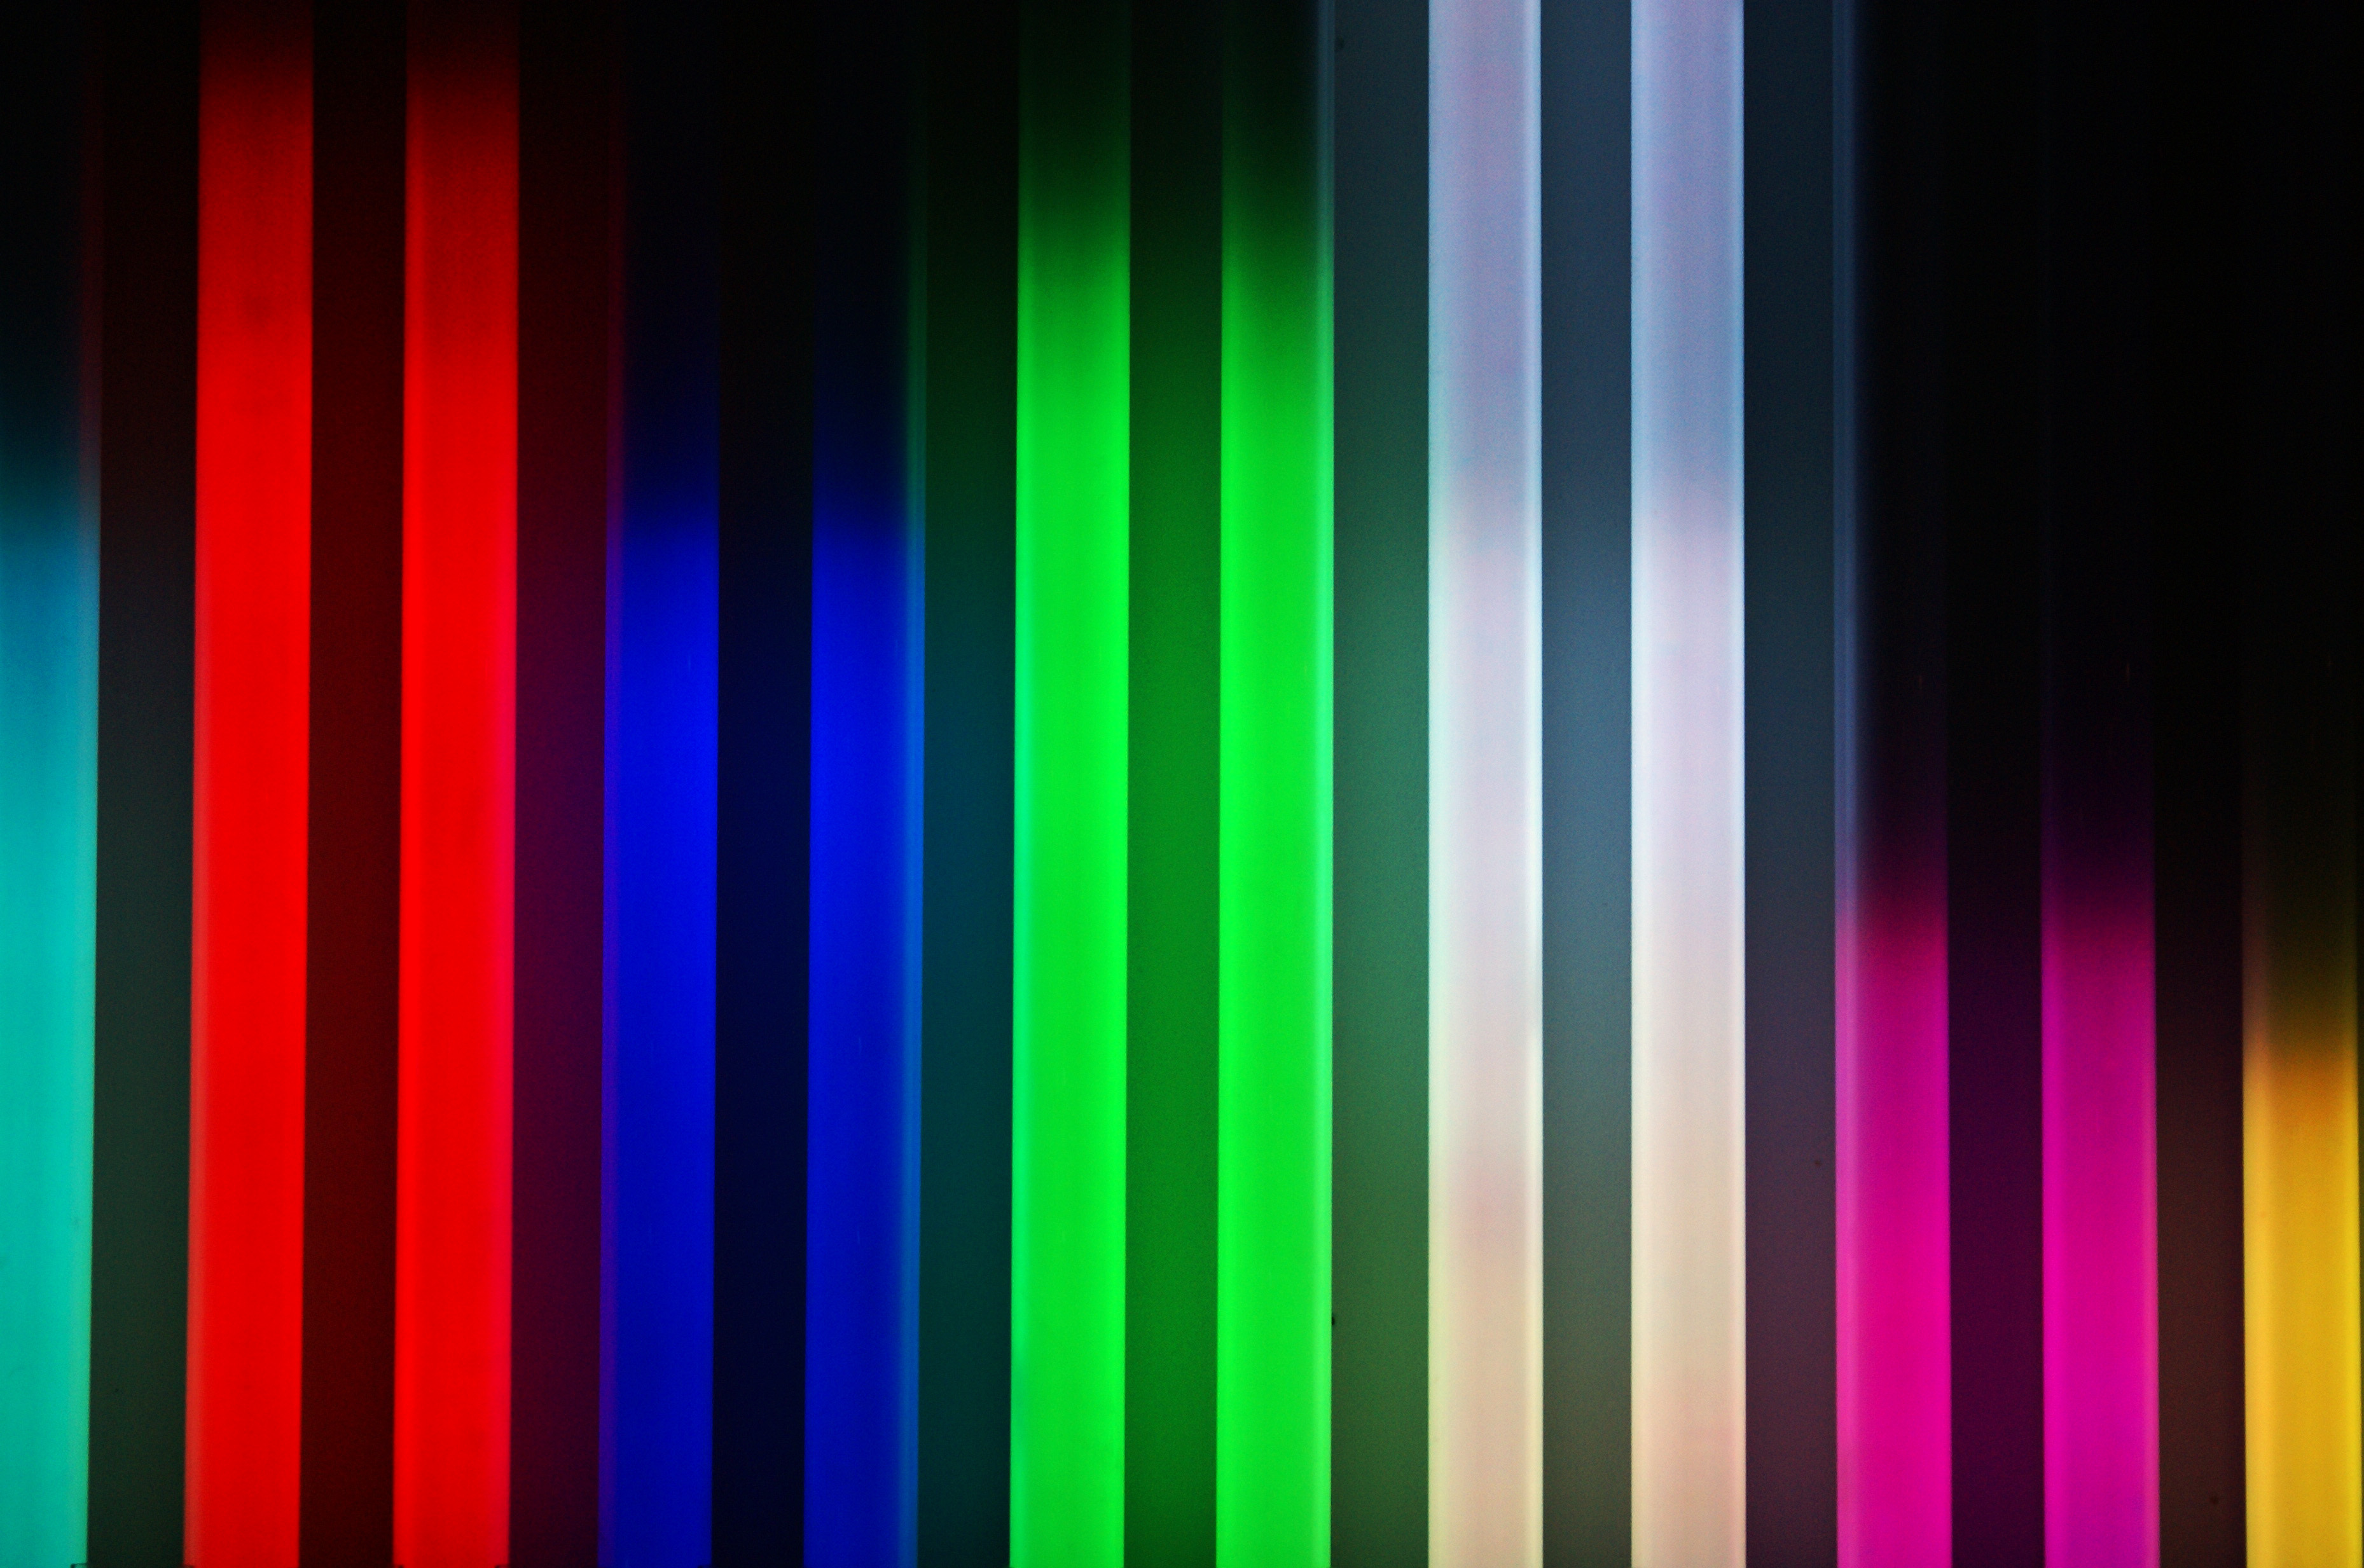 120587 download wallpaper Abstract, Stripes, Streaks, Multicolored, Motley, Lines, Backlight, Illumination screensavers and pictures for free